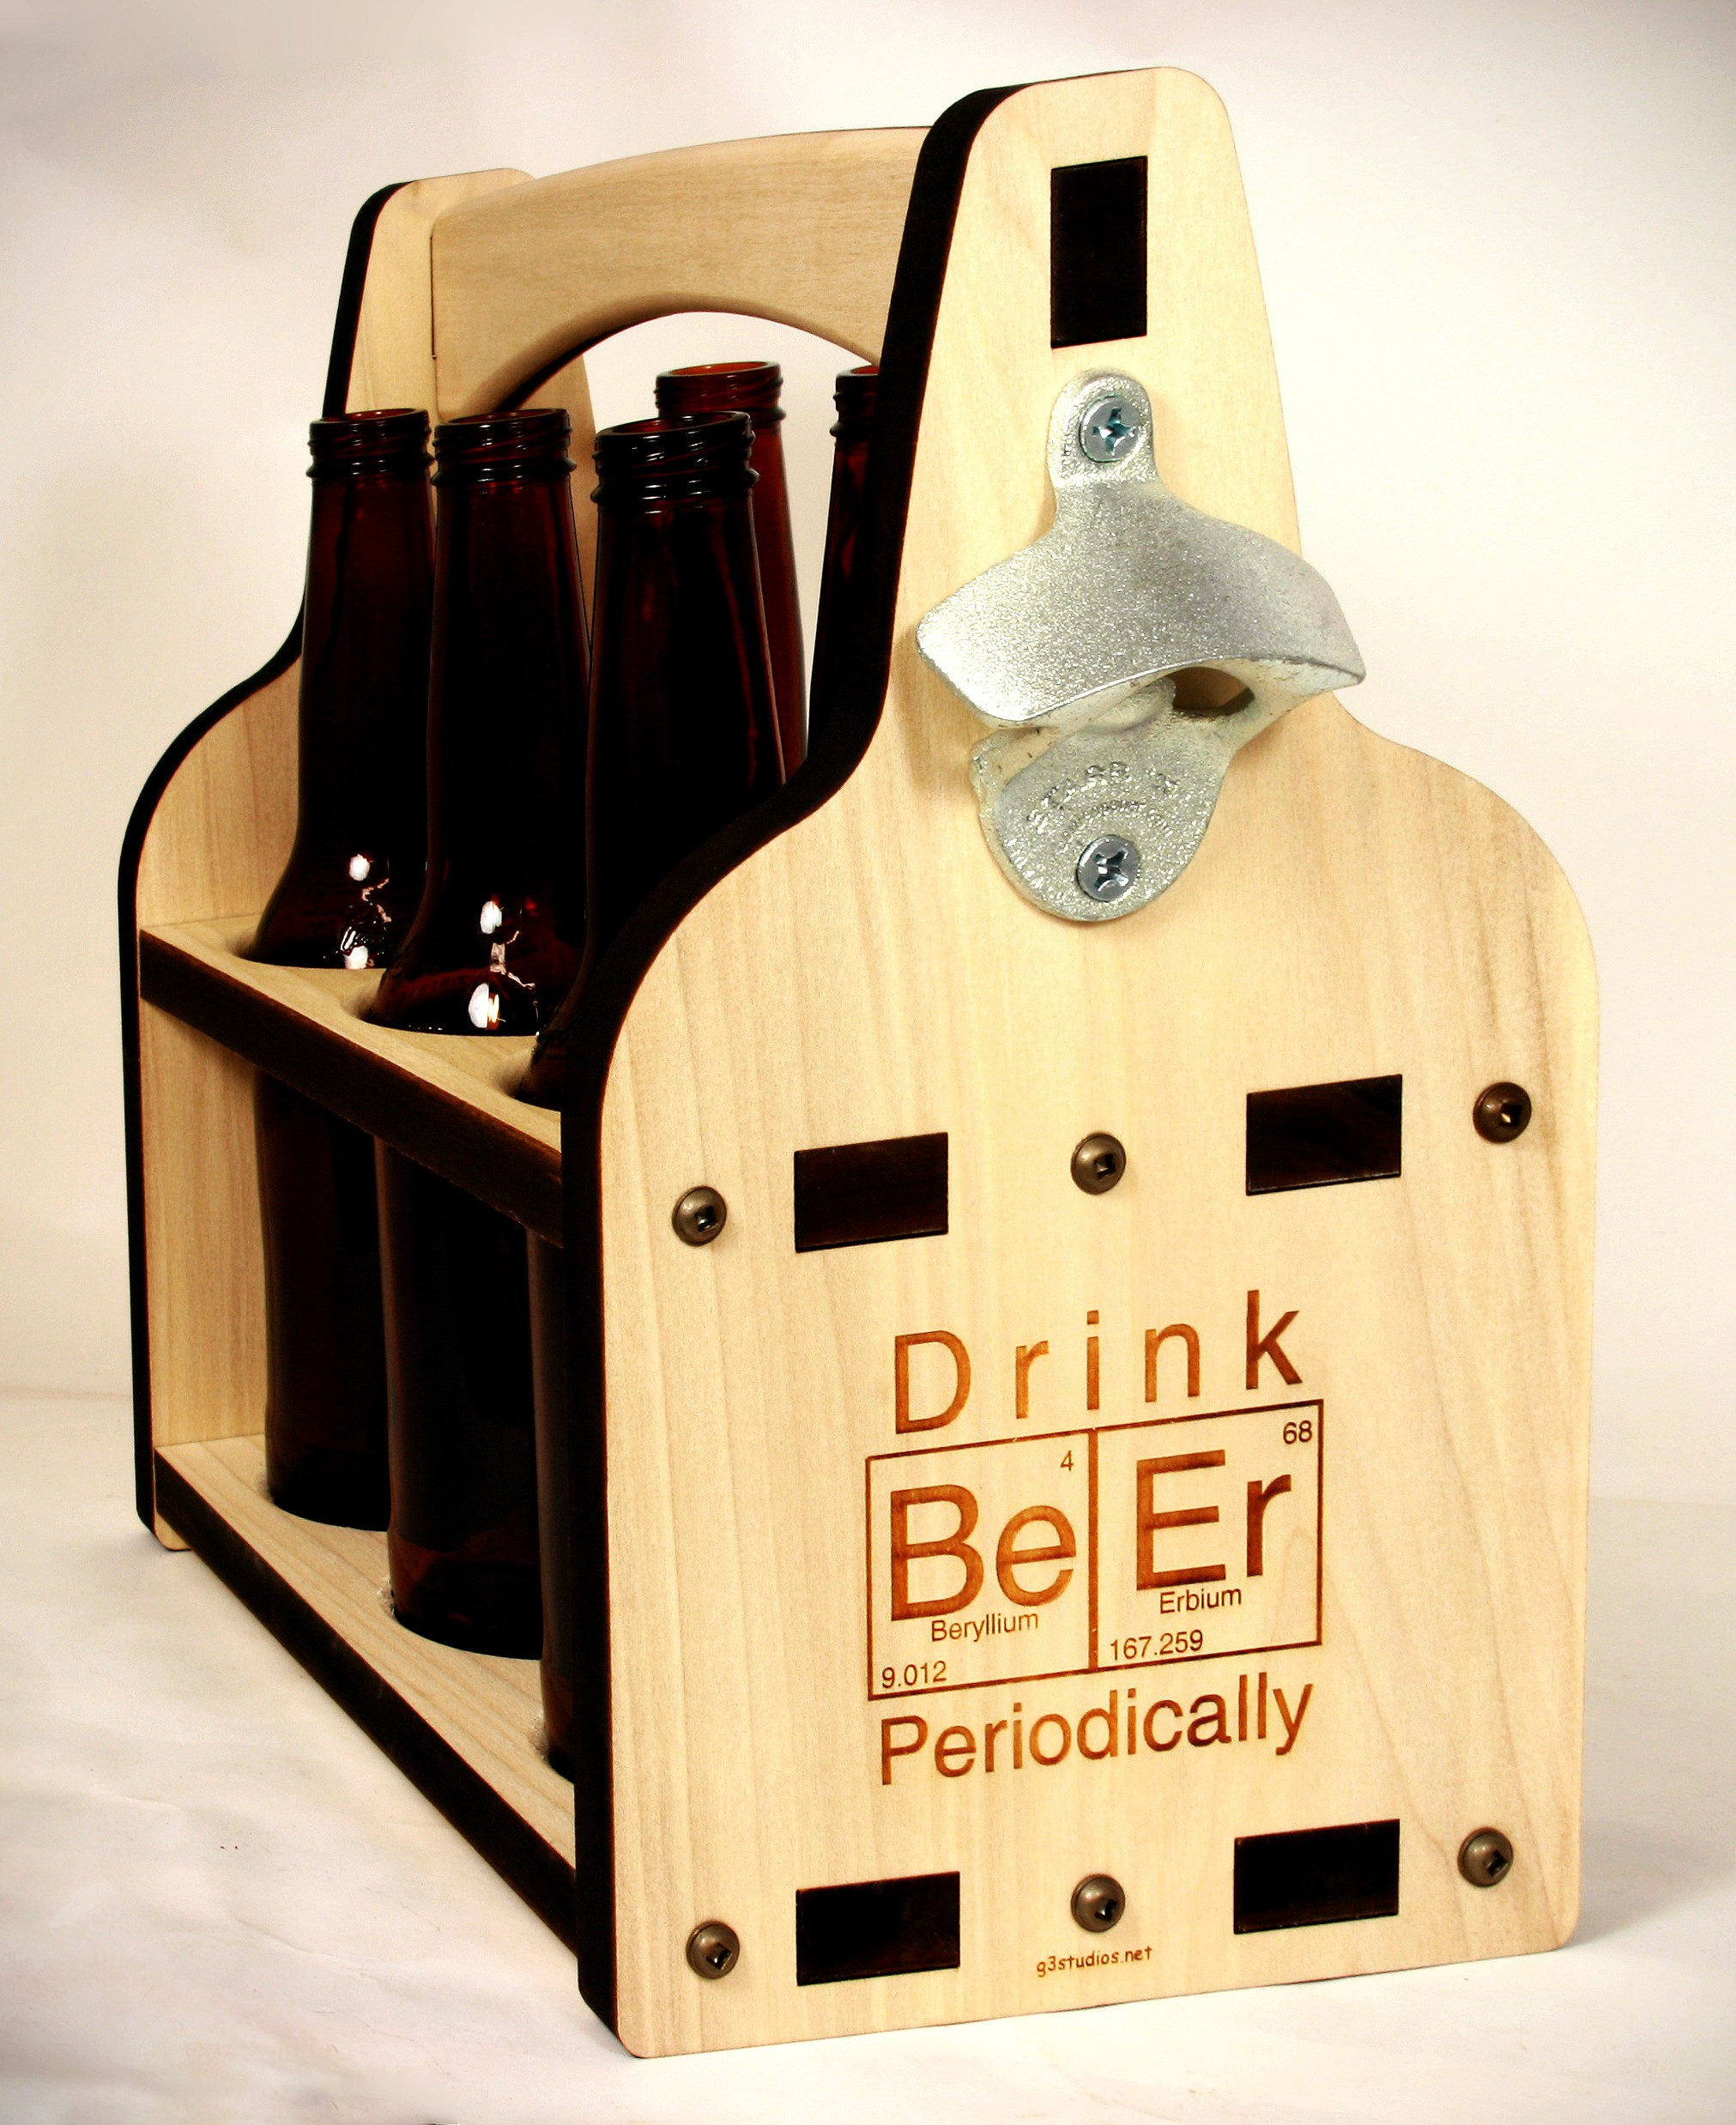 Drink Beer Periodically